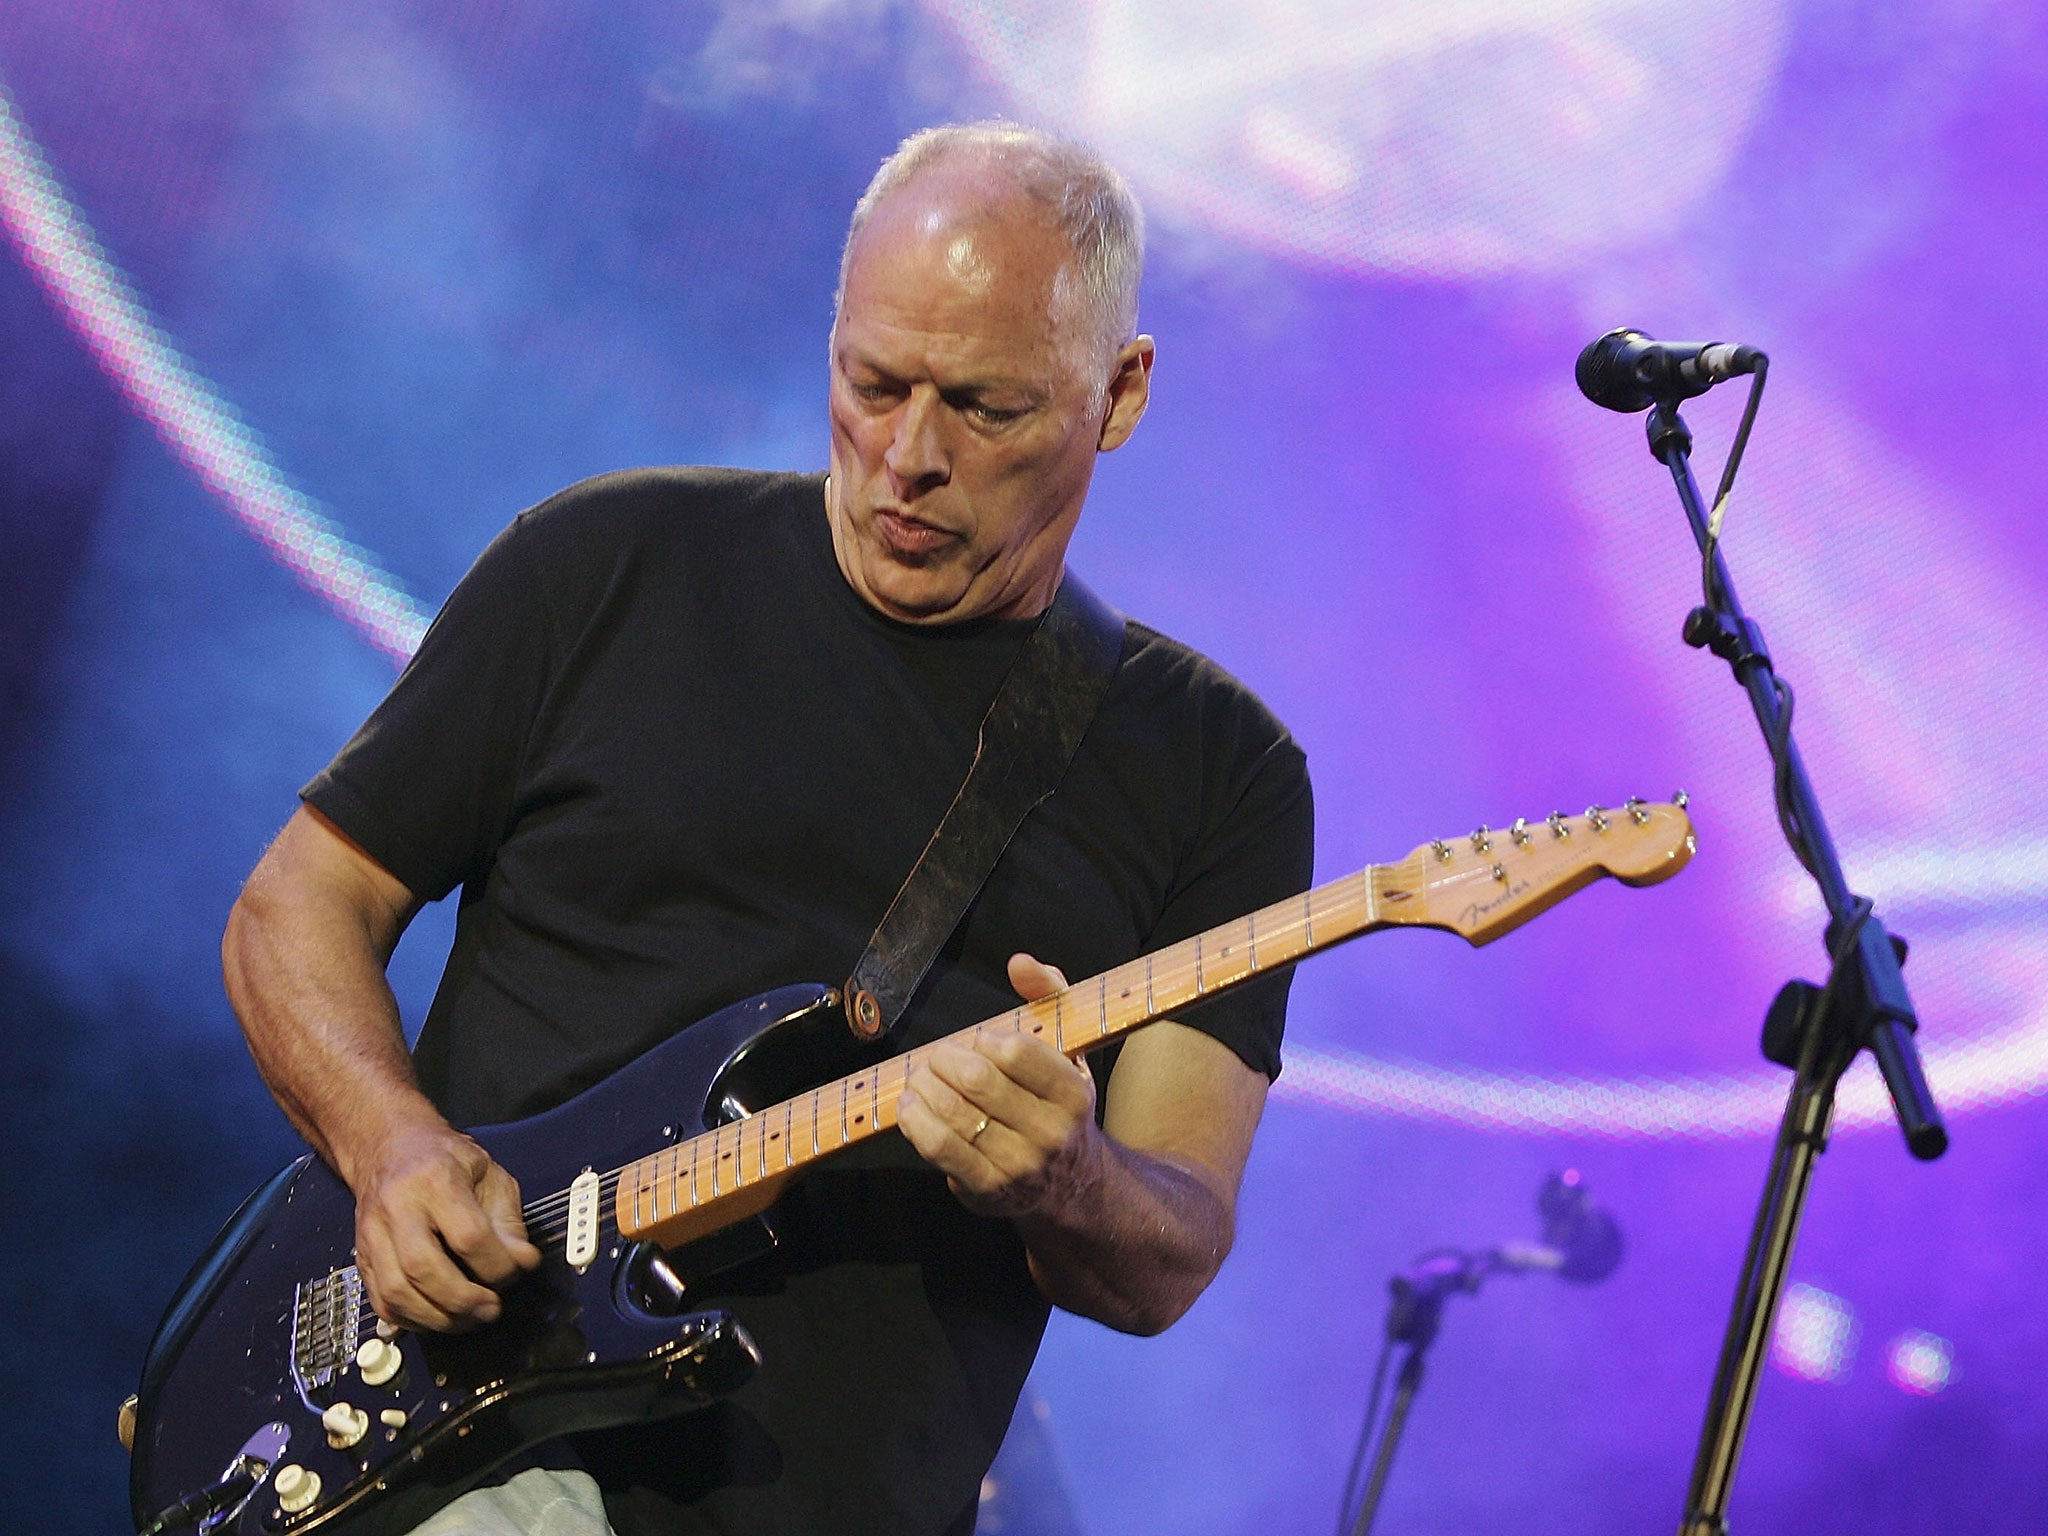 Pink Floyd star David Gilmour holds record-breaking guitar auction for climate change charity